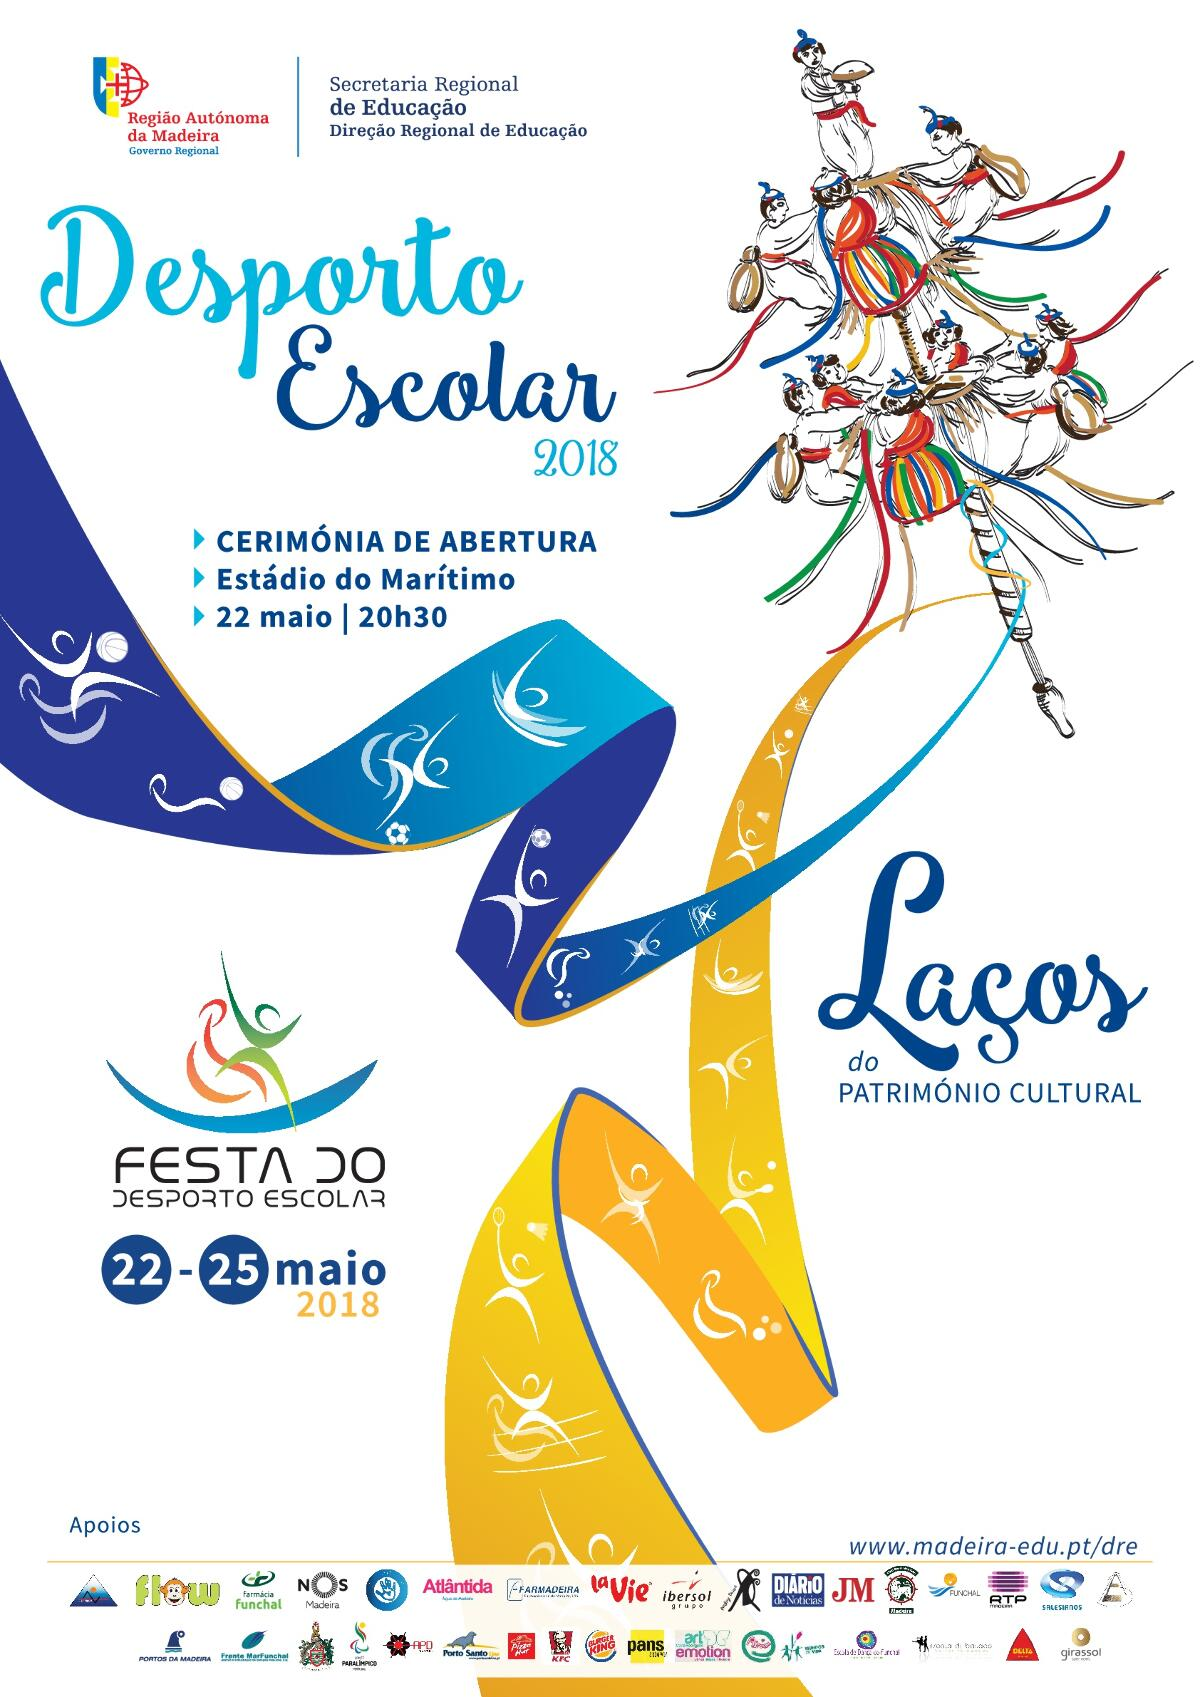 Cerimónia de Abertura do Desporto Escolar 2018